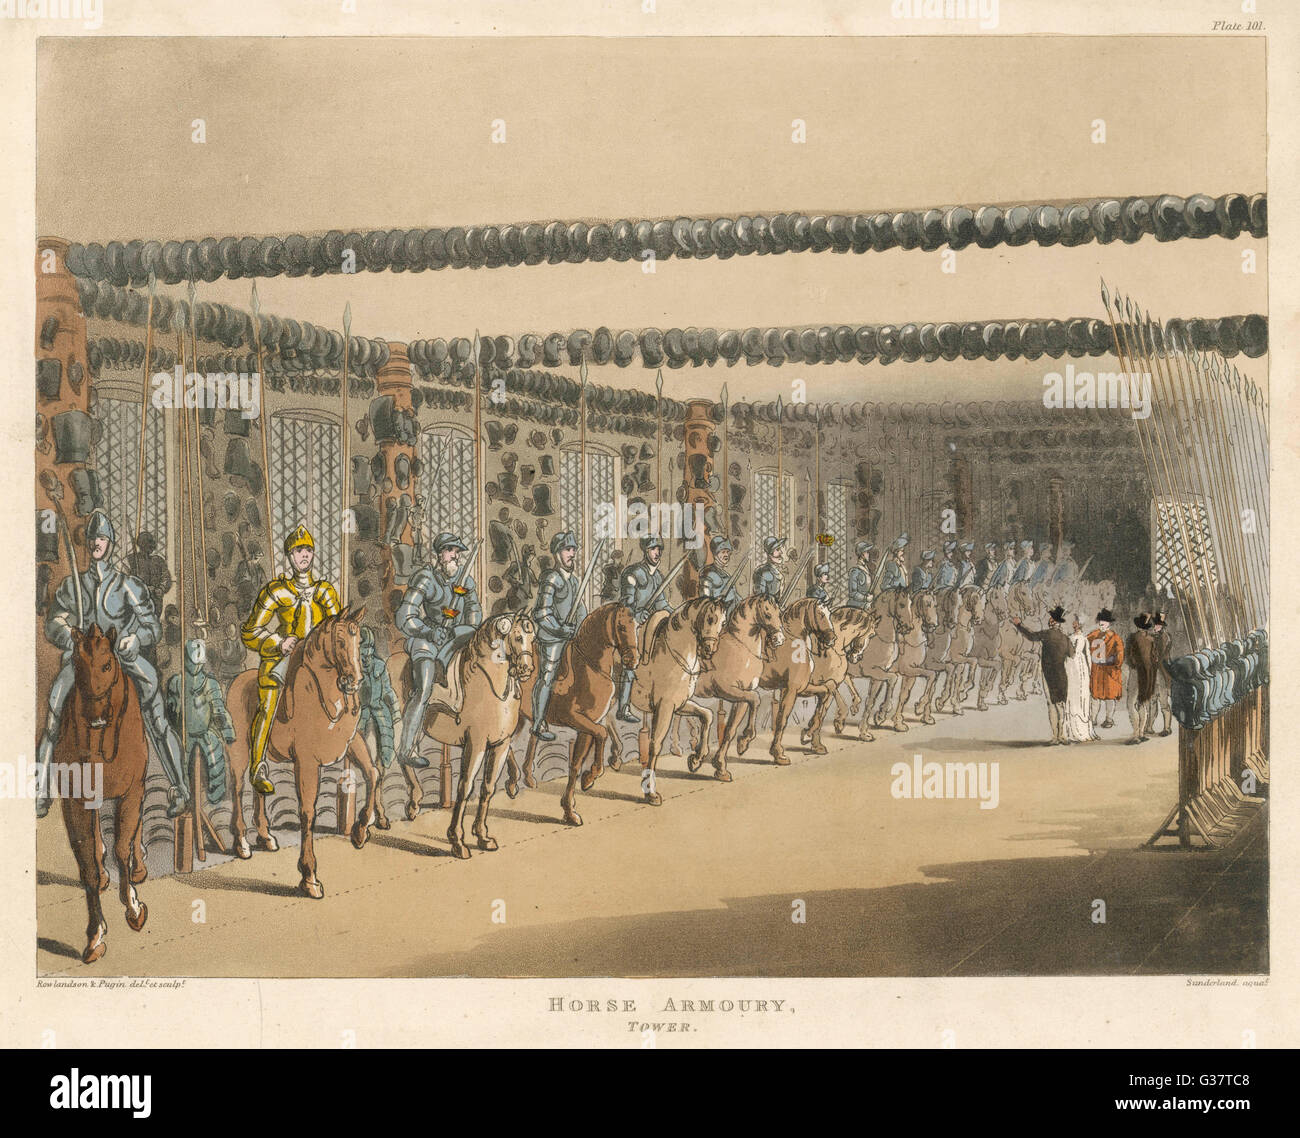 The Great Horse Armoury          Date: 1809 - Stock Image